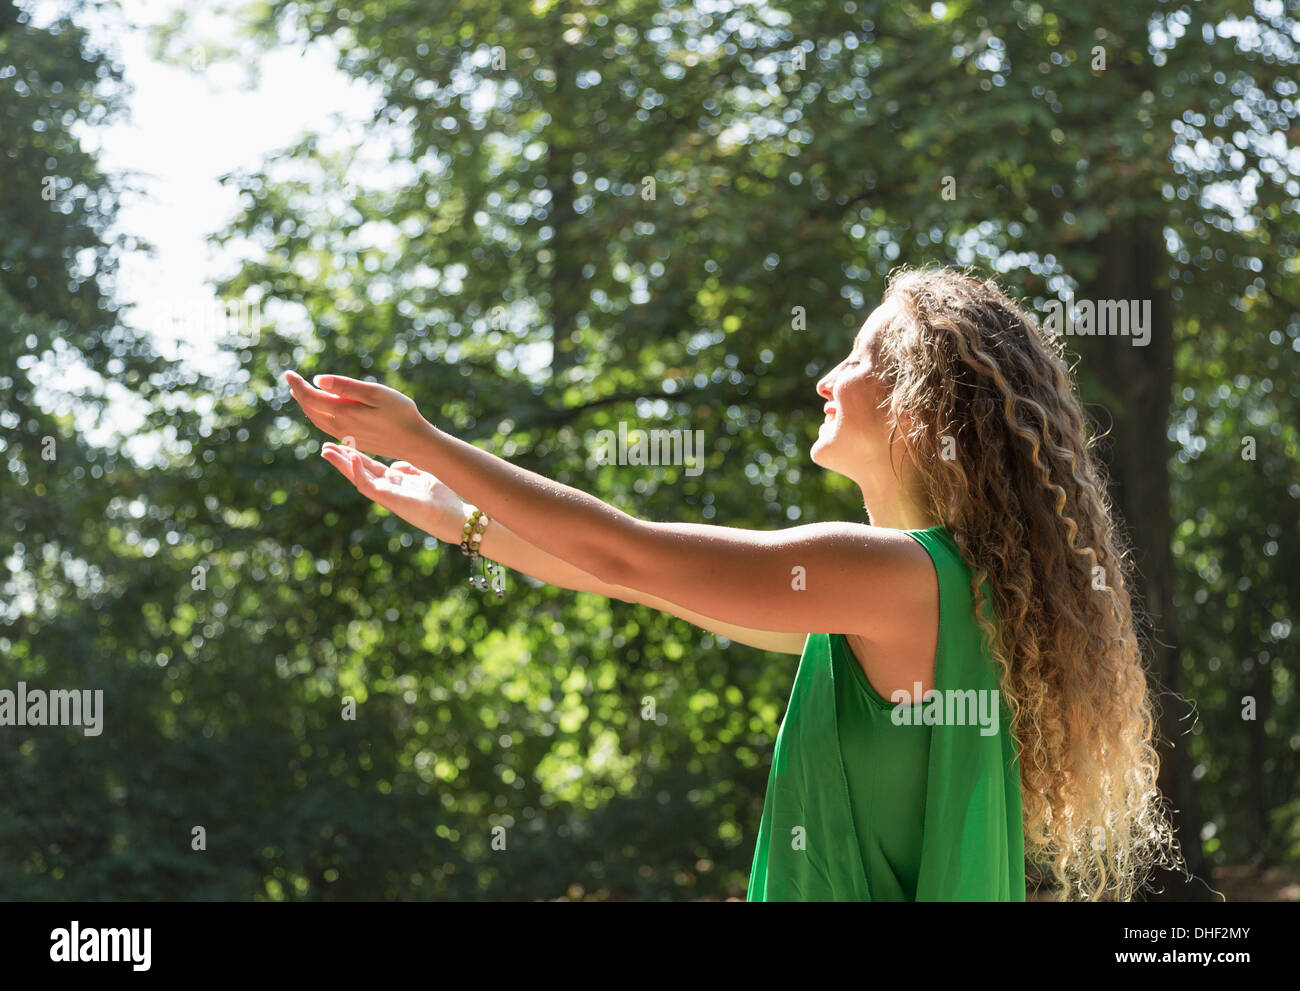 Teenage girl wearing green top with arms out, Prague, Czech Republic - Stock Image